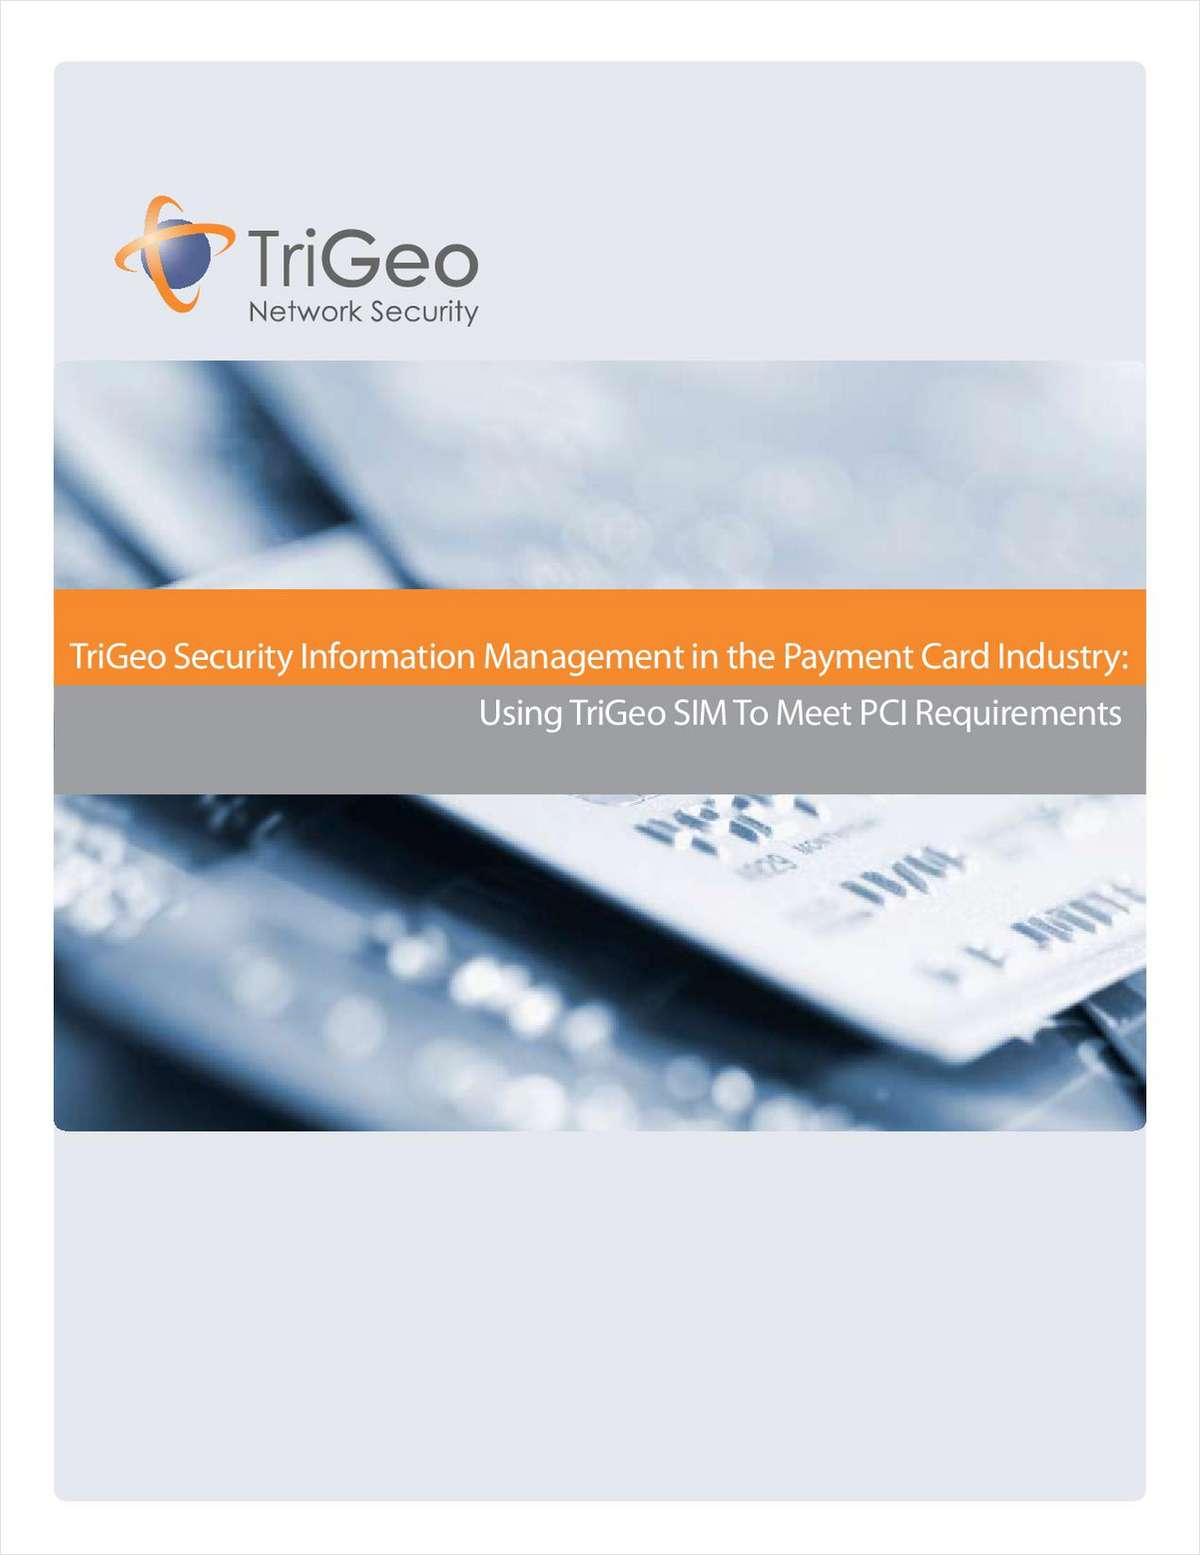 TriGeo Security Information Management in the Payment Card Industry: Using TriGeo SIM To Meet PCI Requirements